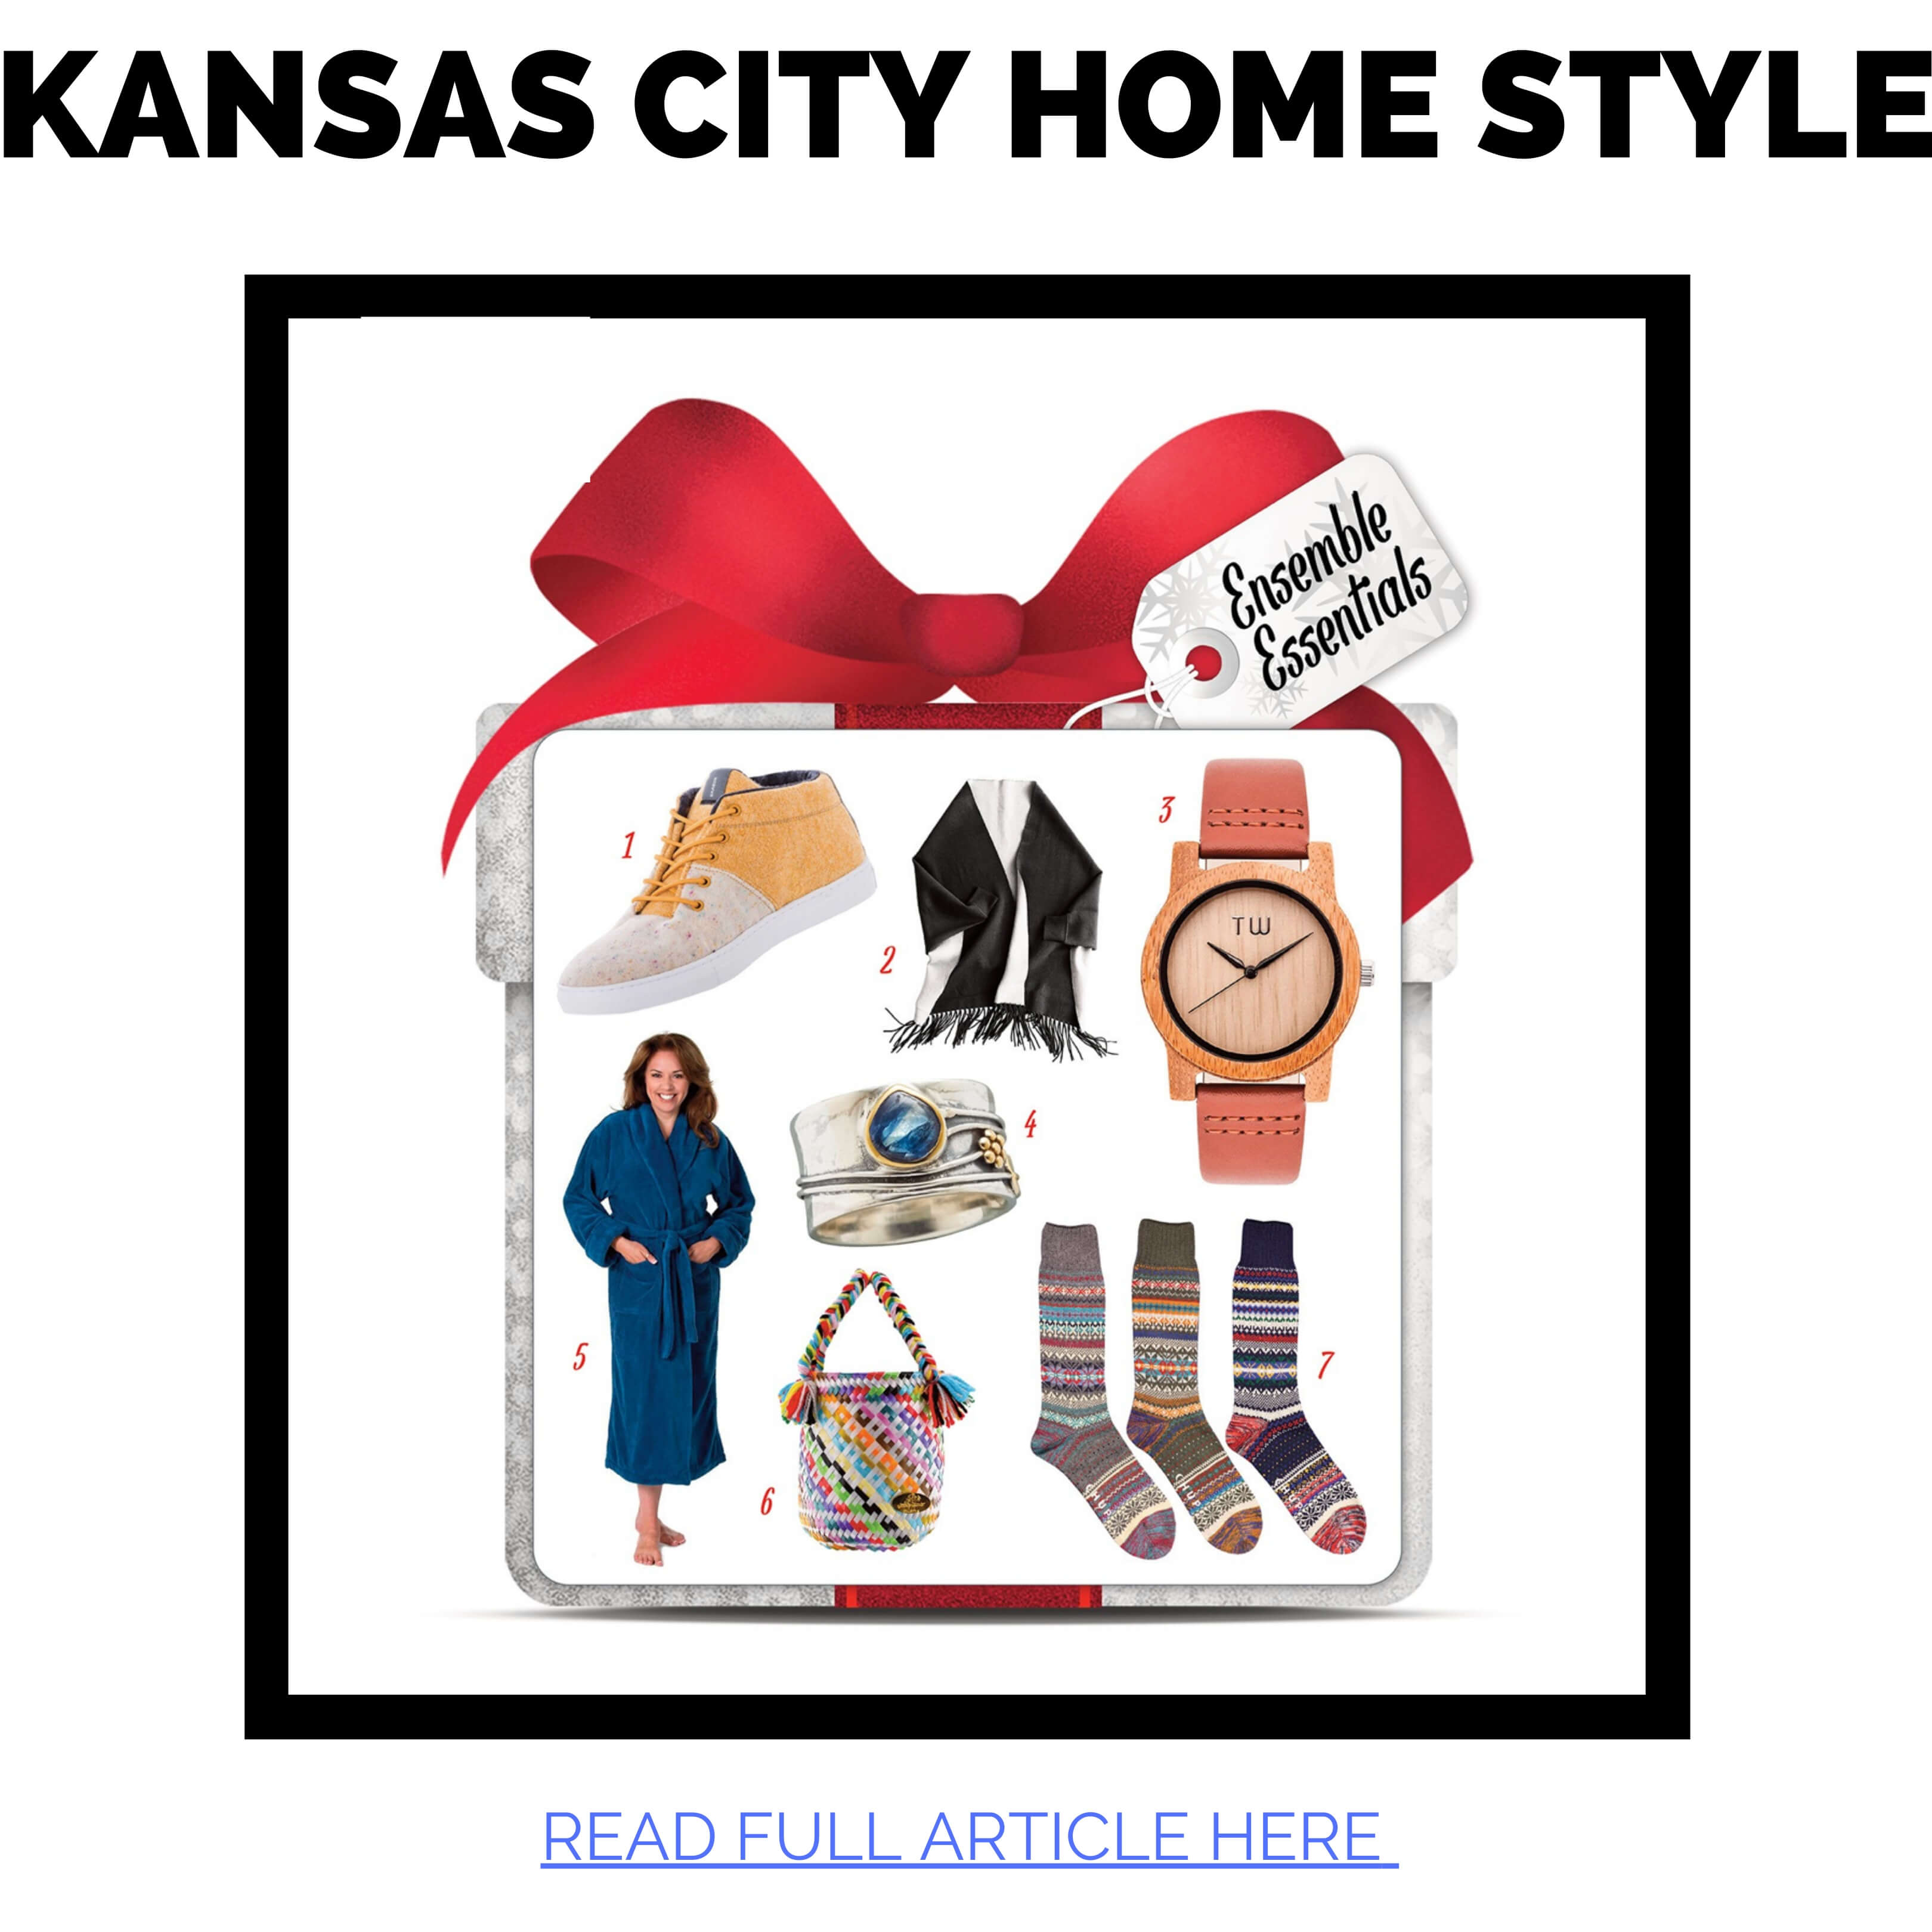 JAC featured in Kansas City Home Style